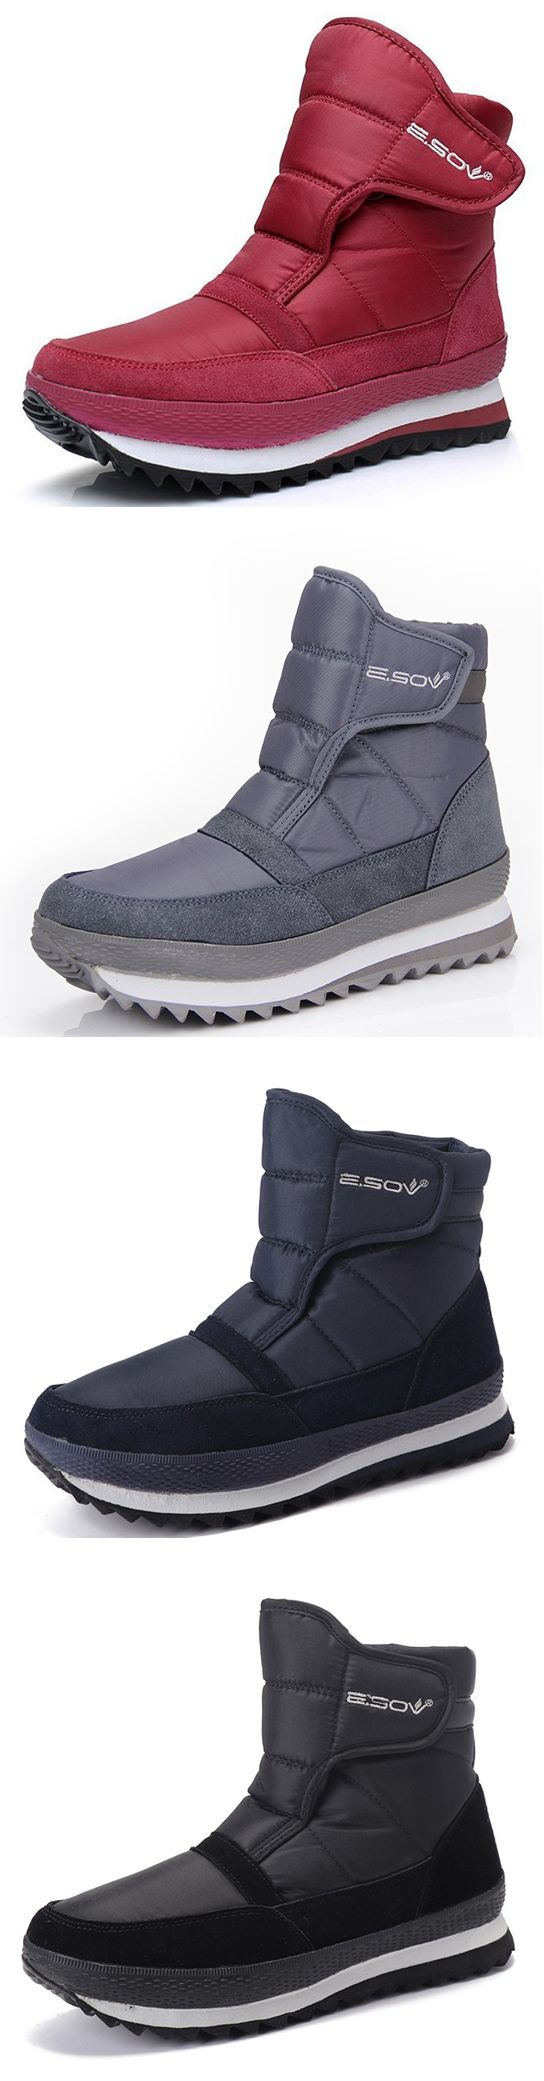 The Boots Are So Cute!Right?6 Clors for Options.Only US$30.82.Must Have It for This Winter.